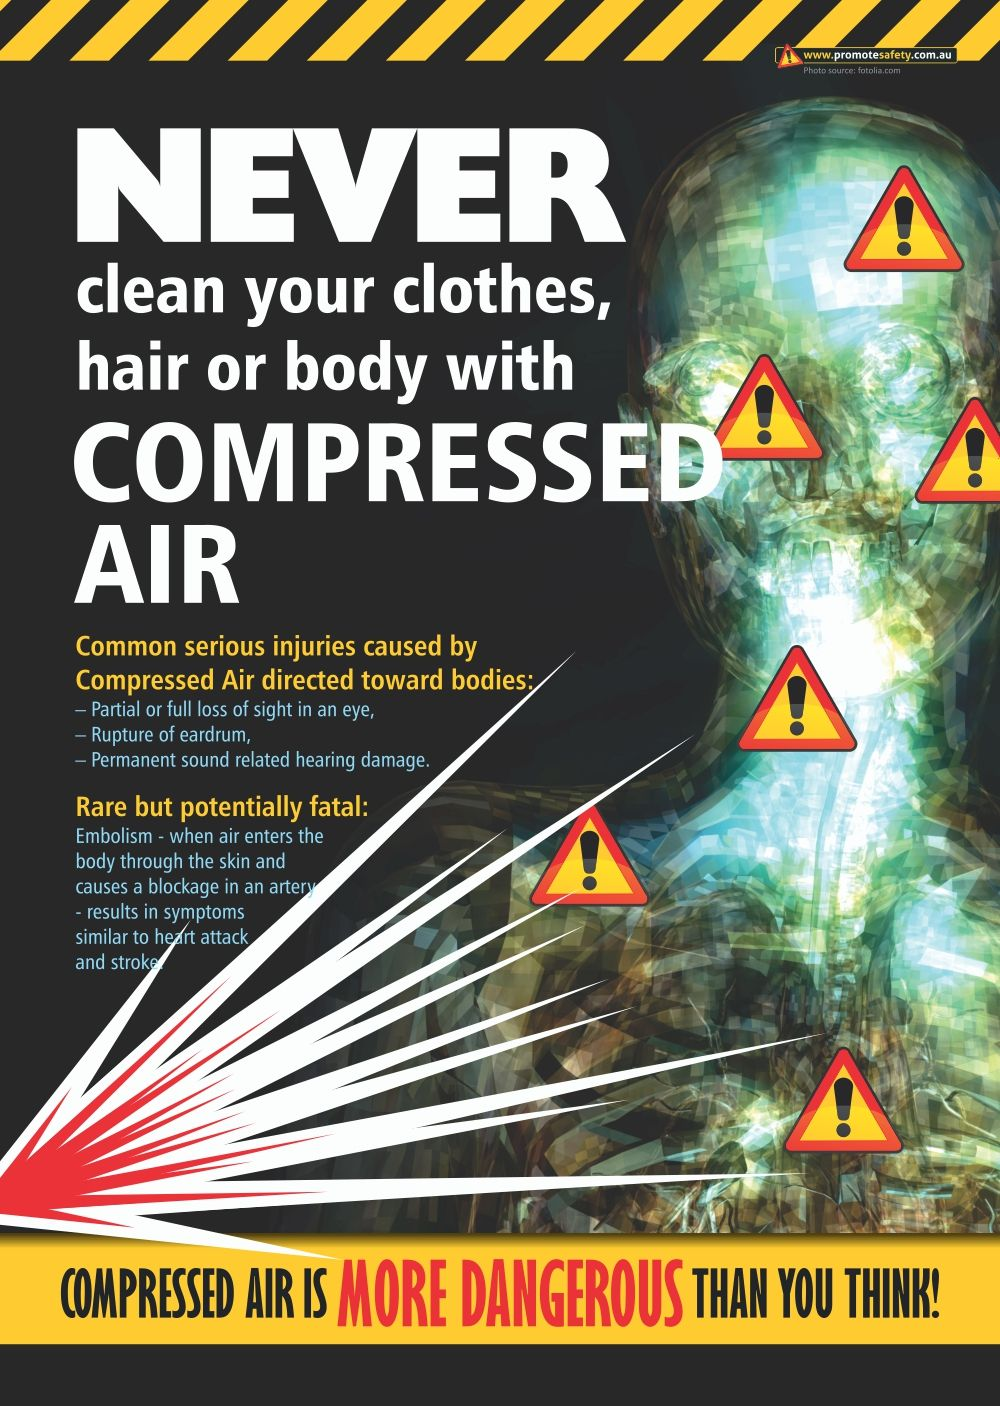 Compressed air doesn't seem dangerous, which is why so